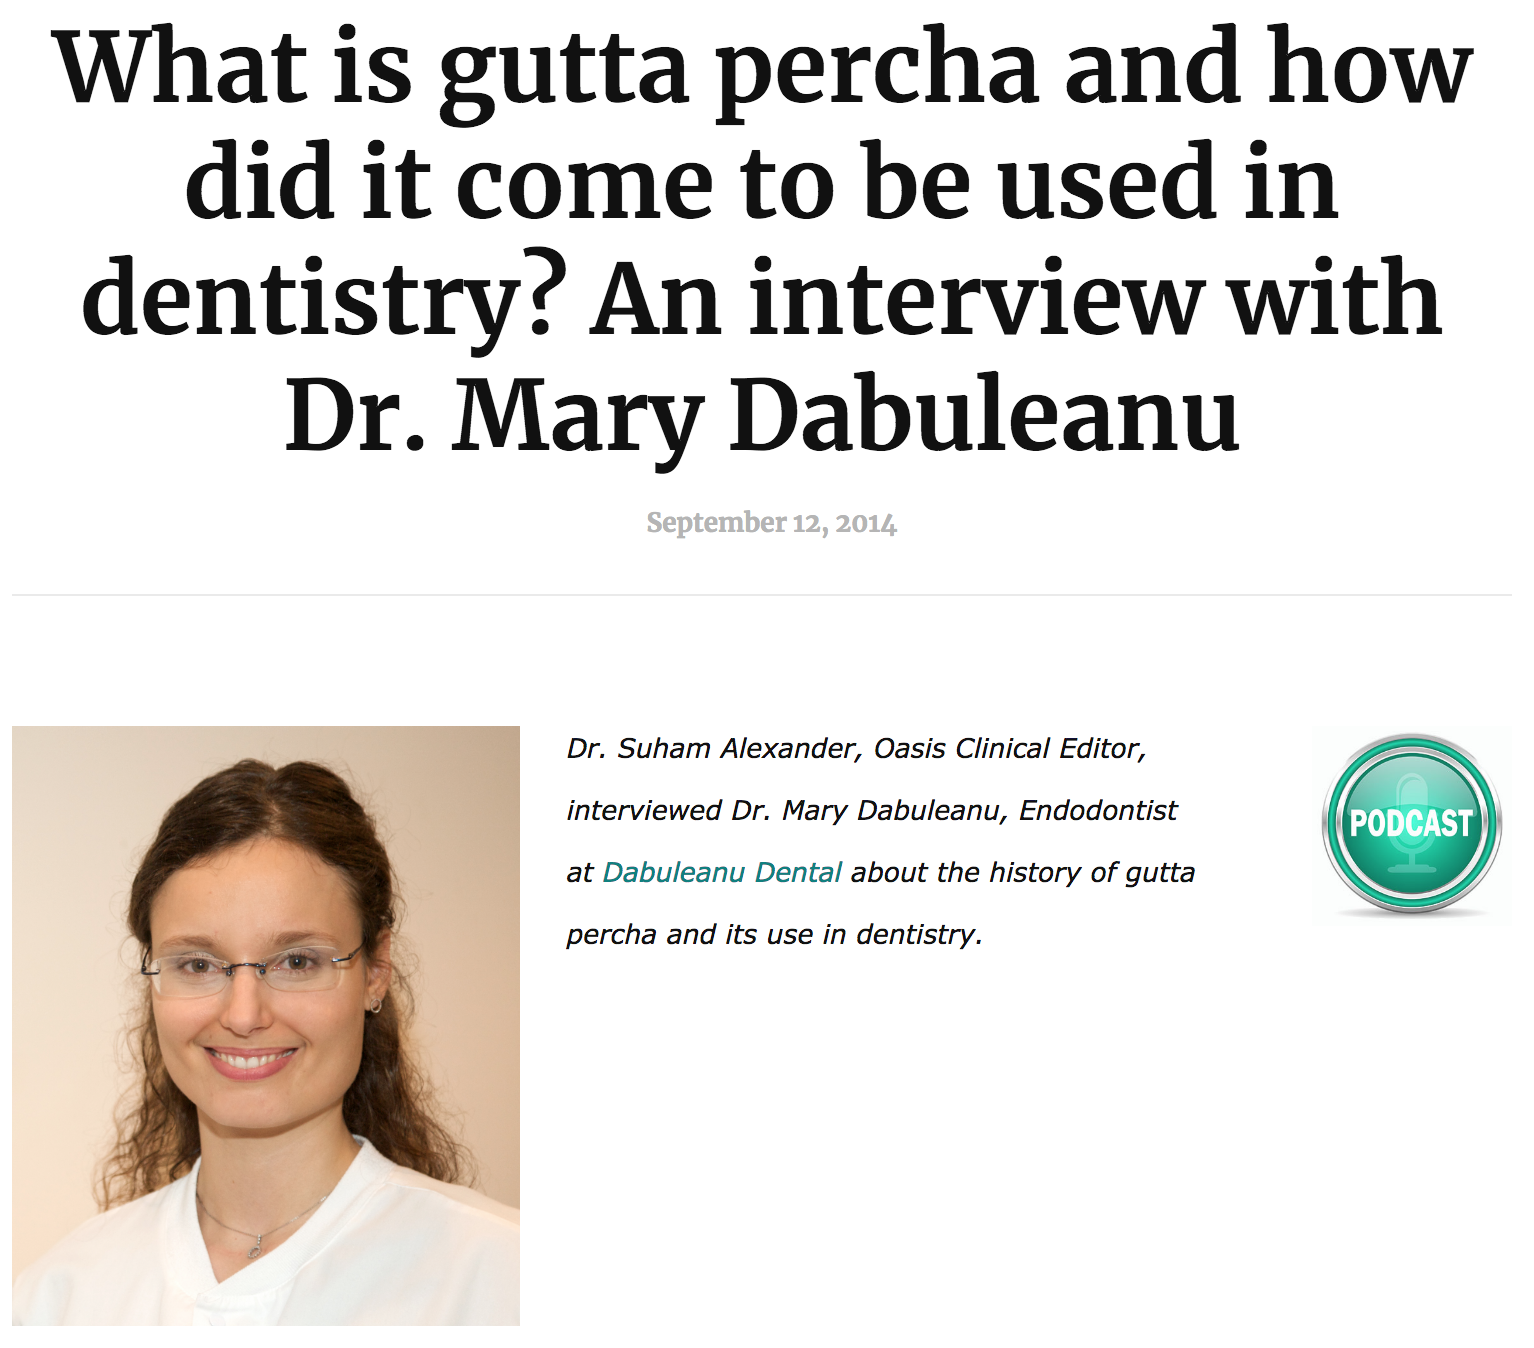 Dr. Mary Dabuleanu - Origin of Gutta Percha in Root Canal Treatment